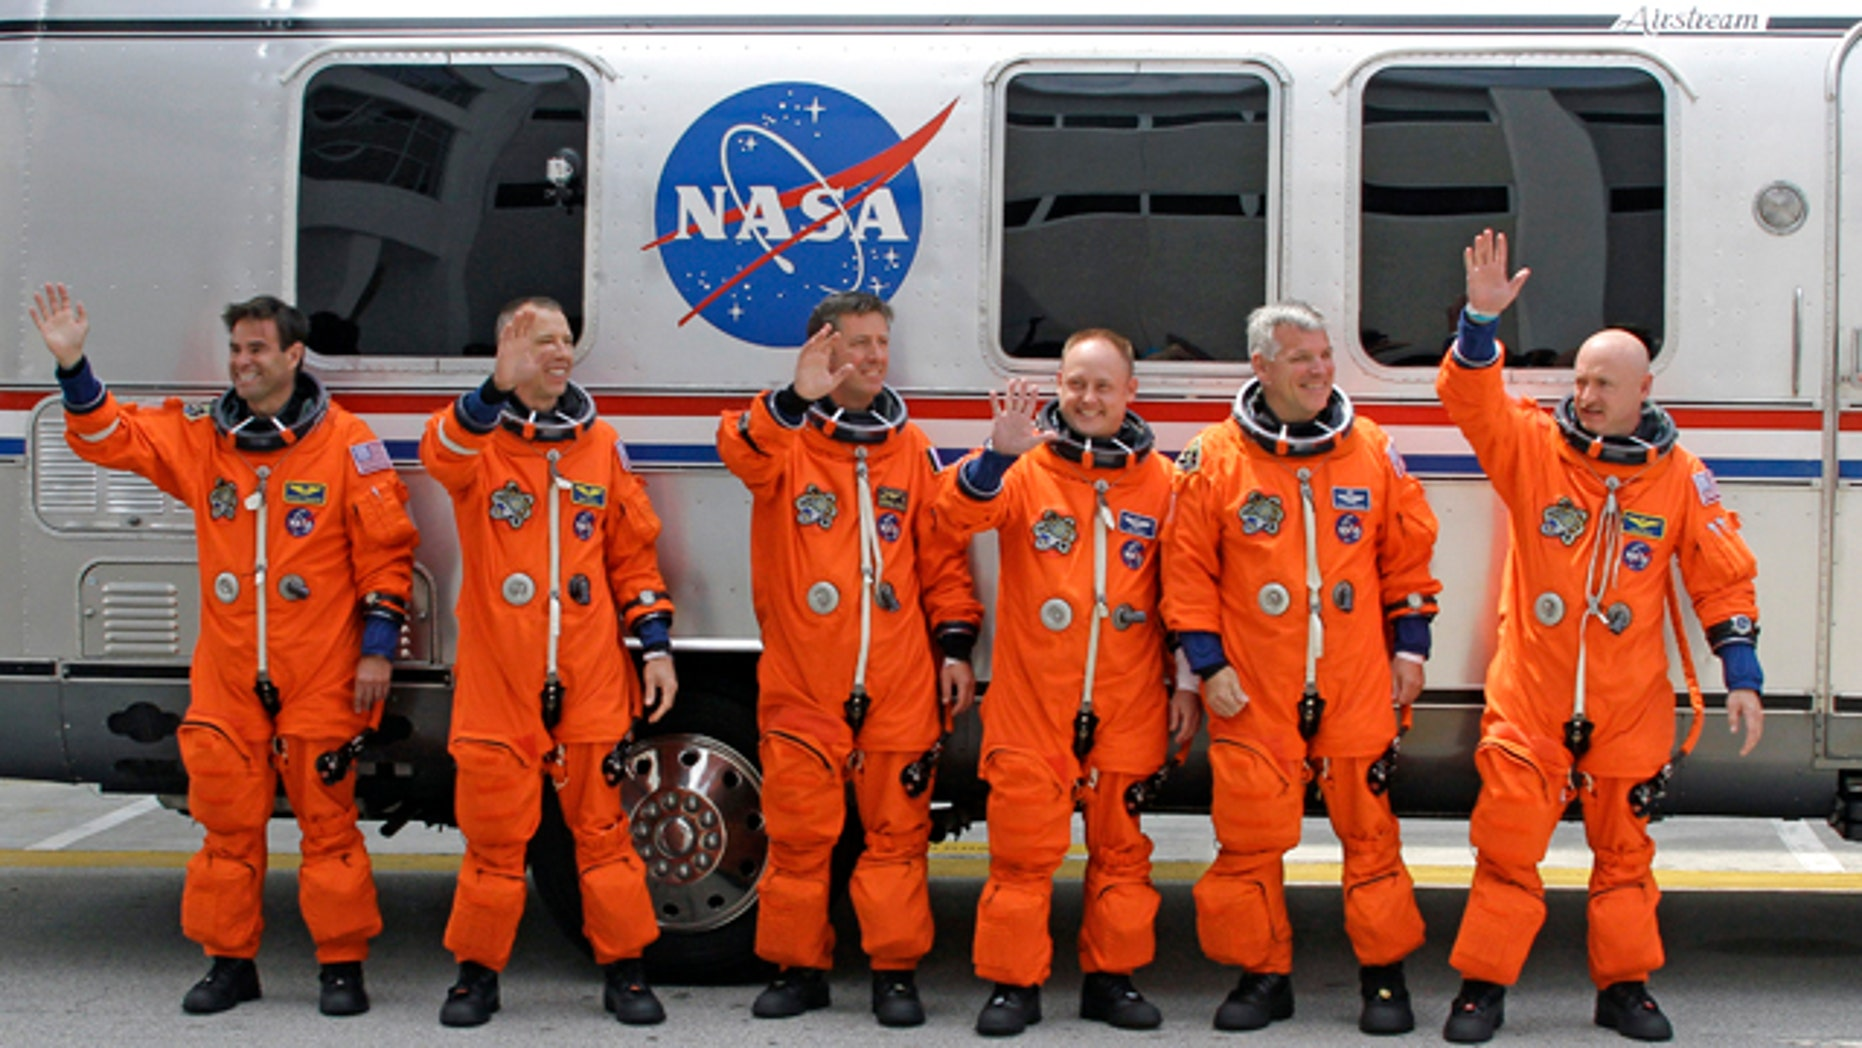 April 29, 2011: The crew of space shuttle Endeavour, from left, Canadian born U.S. astronaut Greg Chamitoff, mission specialist Drew Feustel, European Space Agency astronaut Roberto Vittori, of Italy, mission specialist Mike Fincke, British born U.S. astronaut, pilot Greg Johnson and commander Mark Kelly.